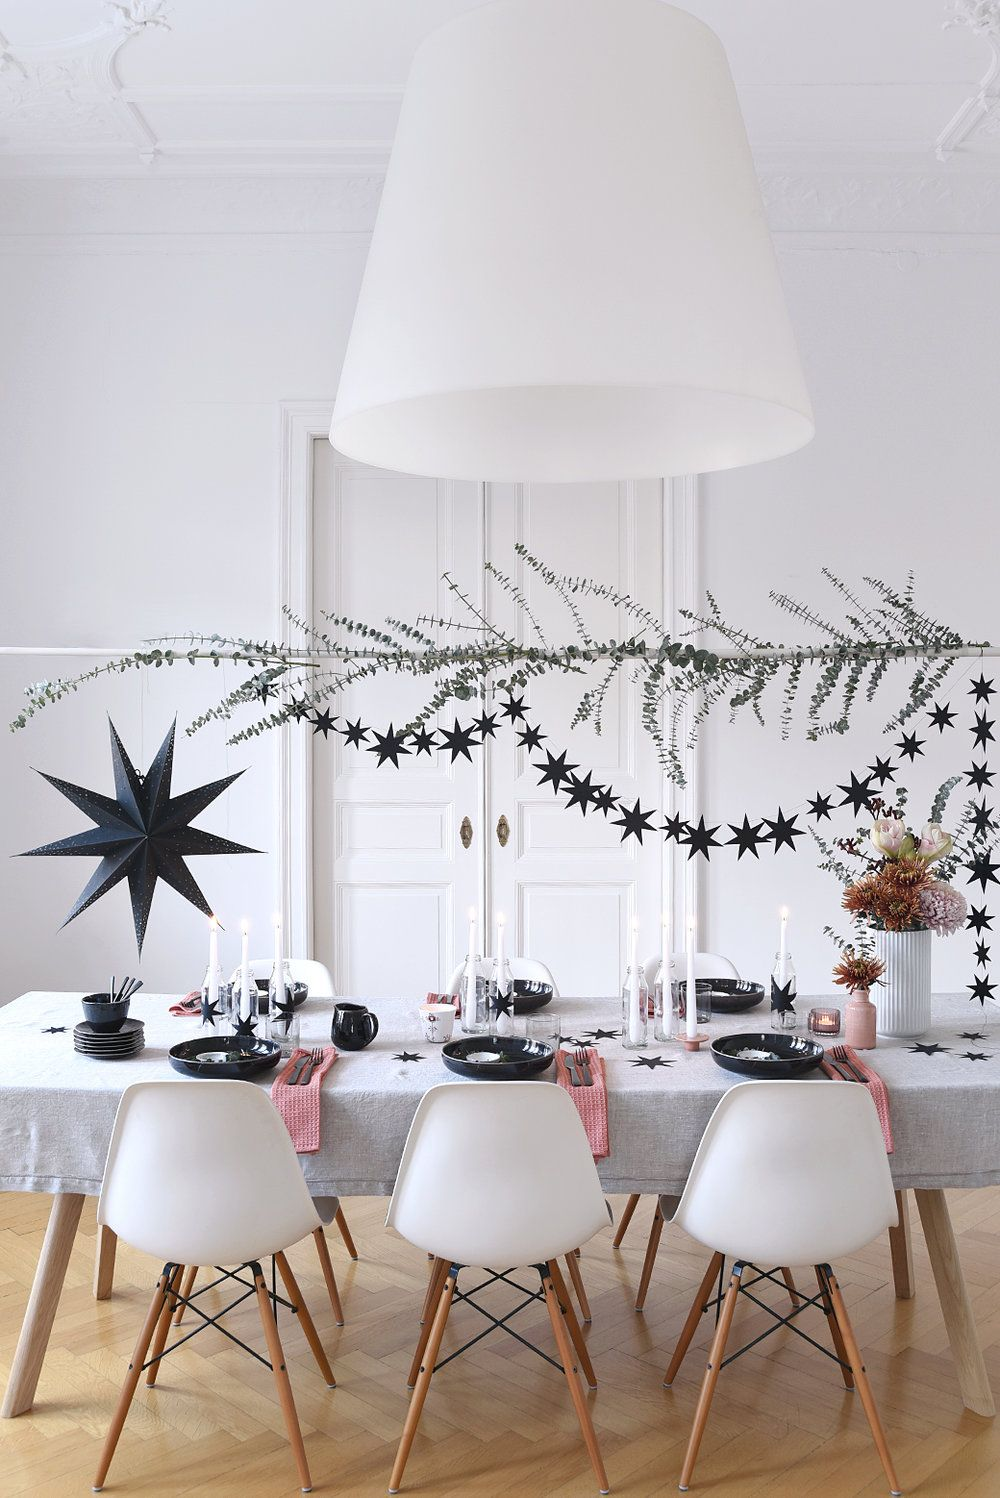 Tischdeko Weihnachten In Weiss Christmas Holiday Decorations For Parties That You Ll Love